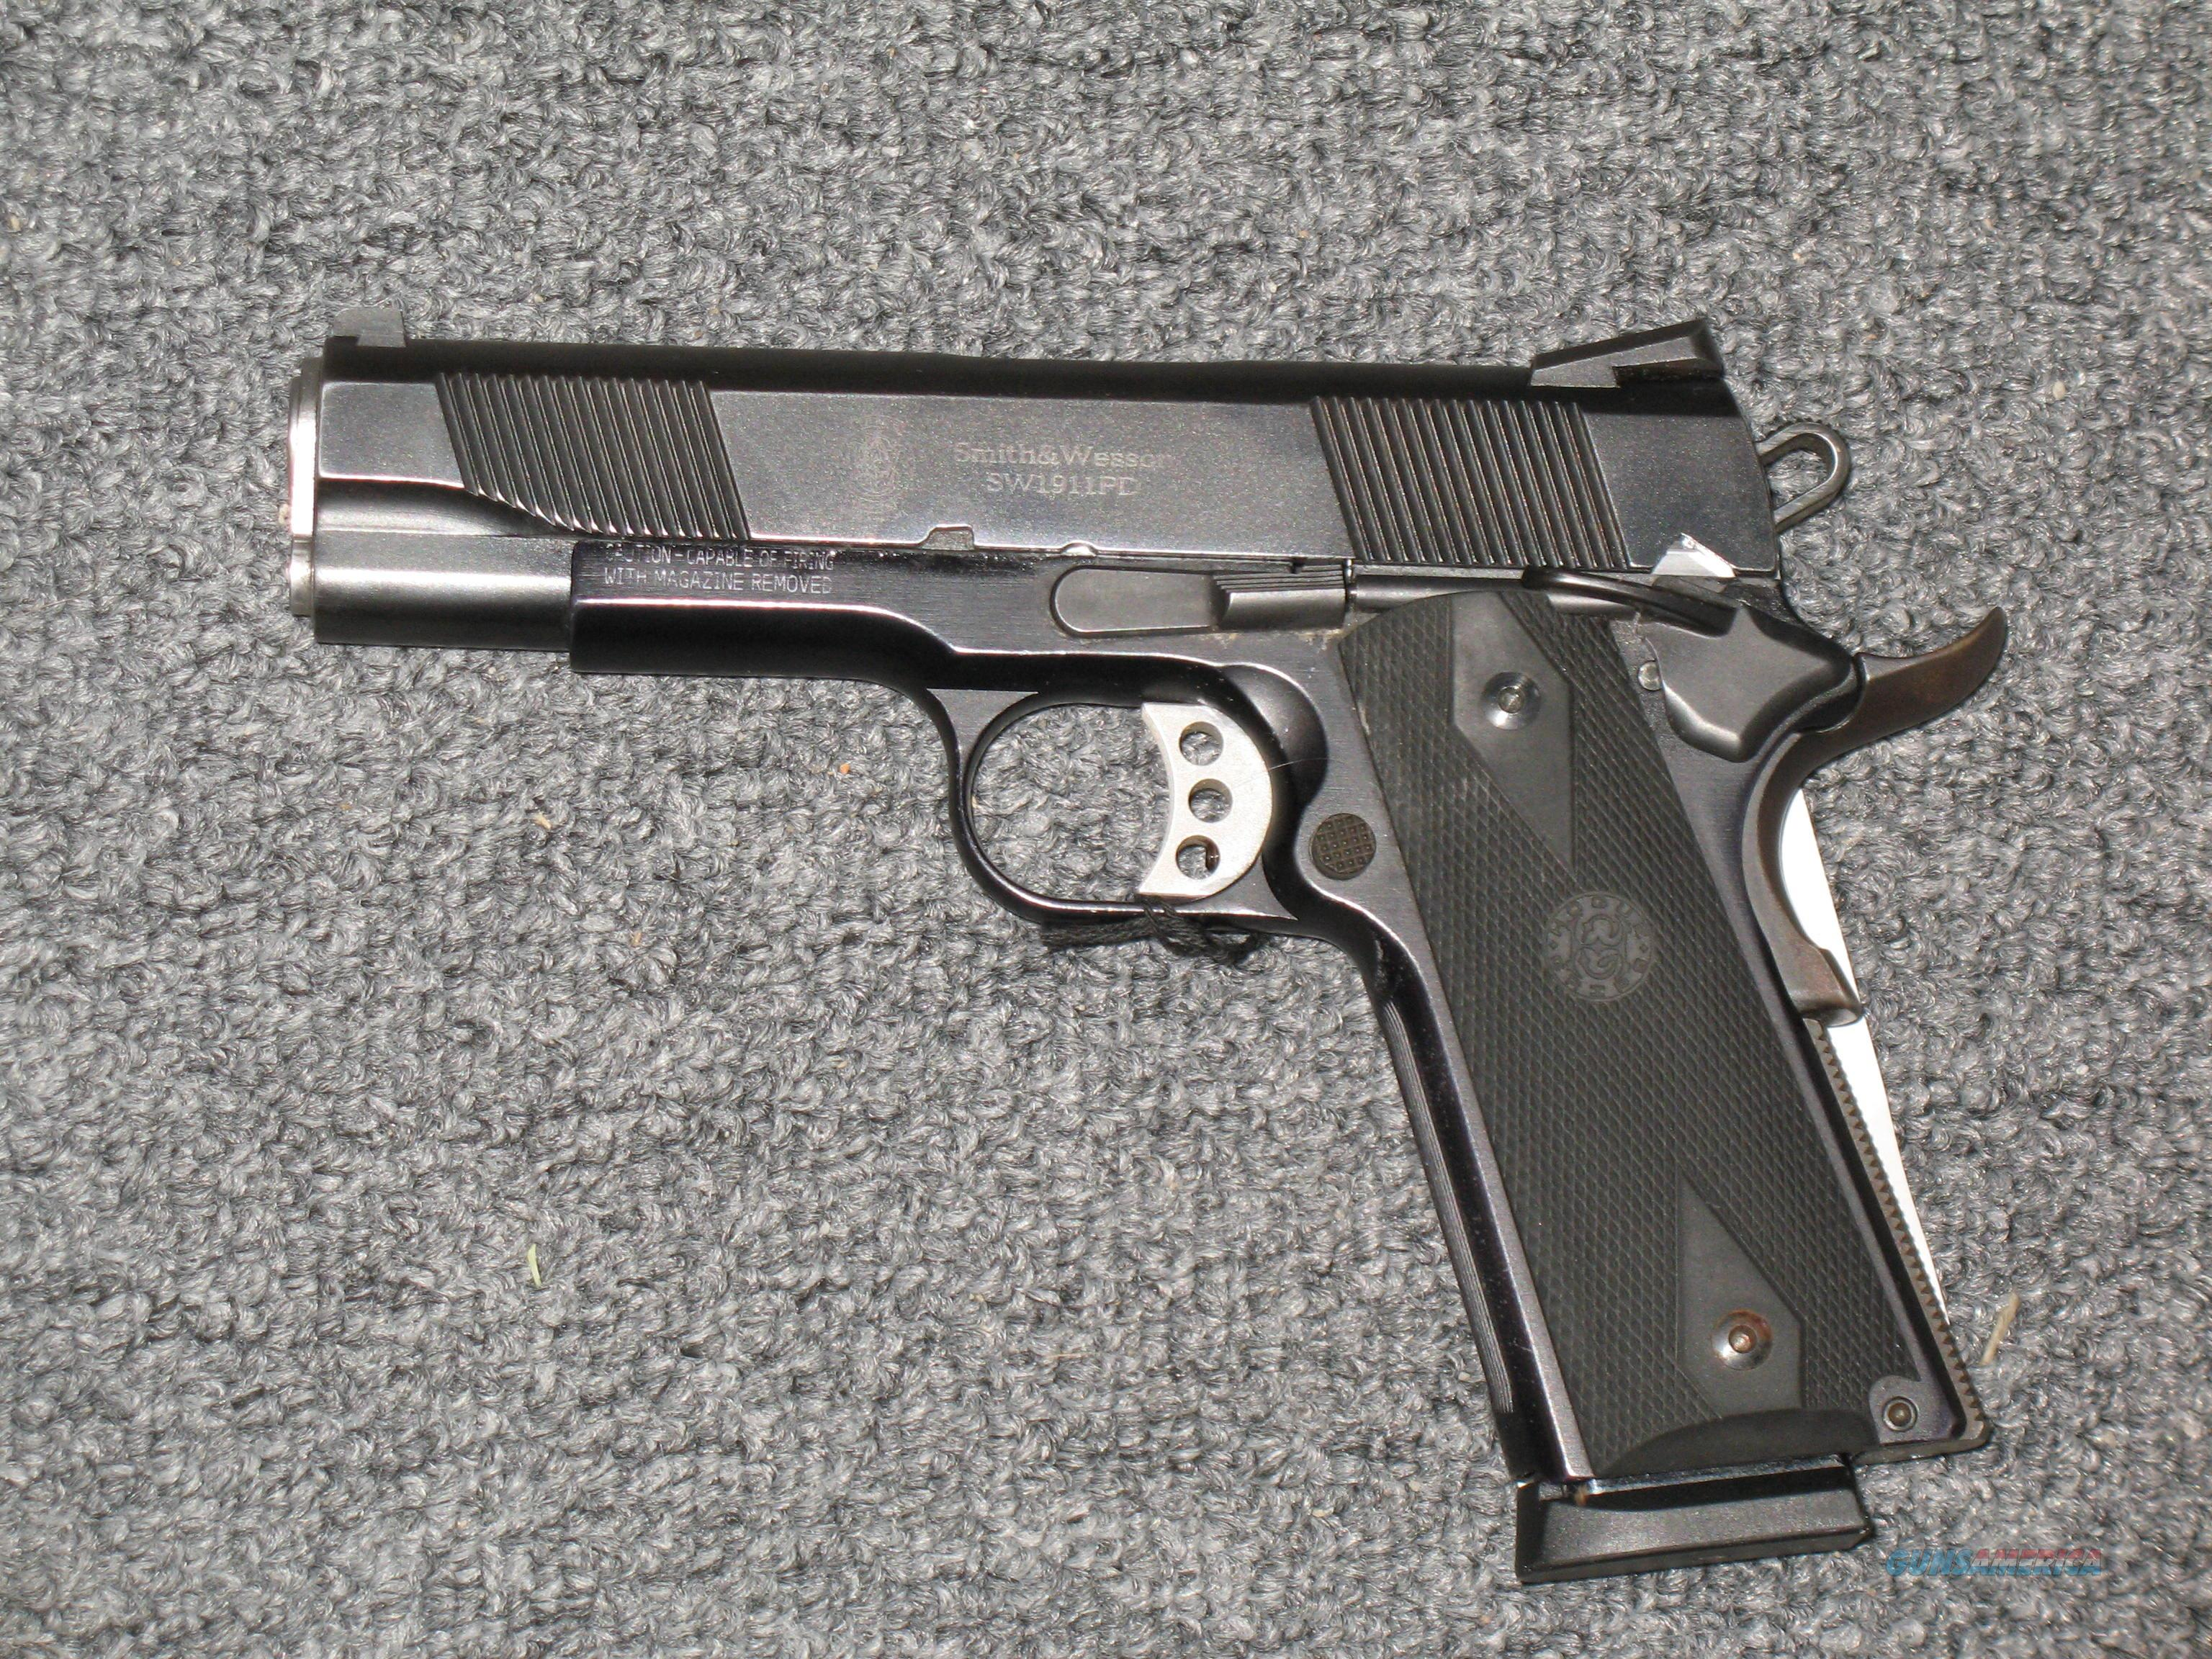 SW1911PD  Guns > Pistols > Smith & Wesson Pistols - Autos > Steel Frame